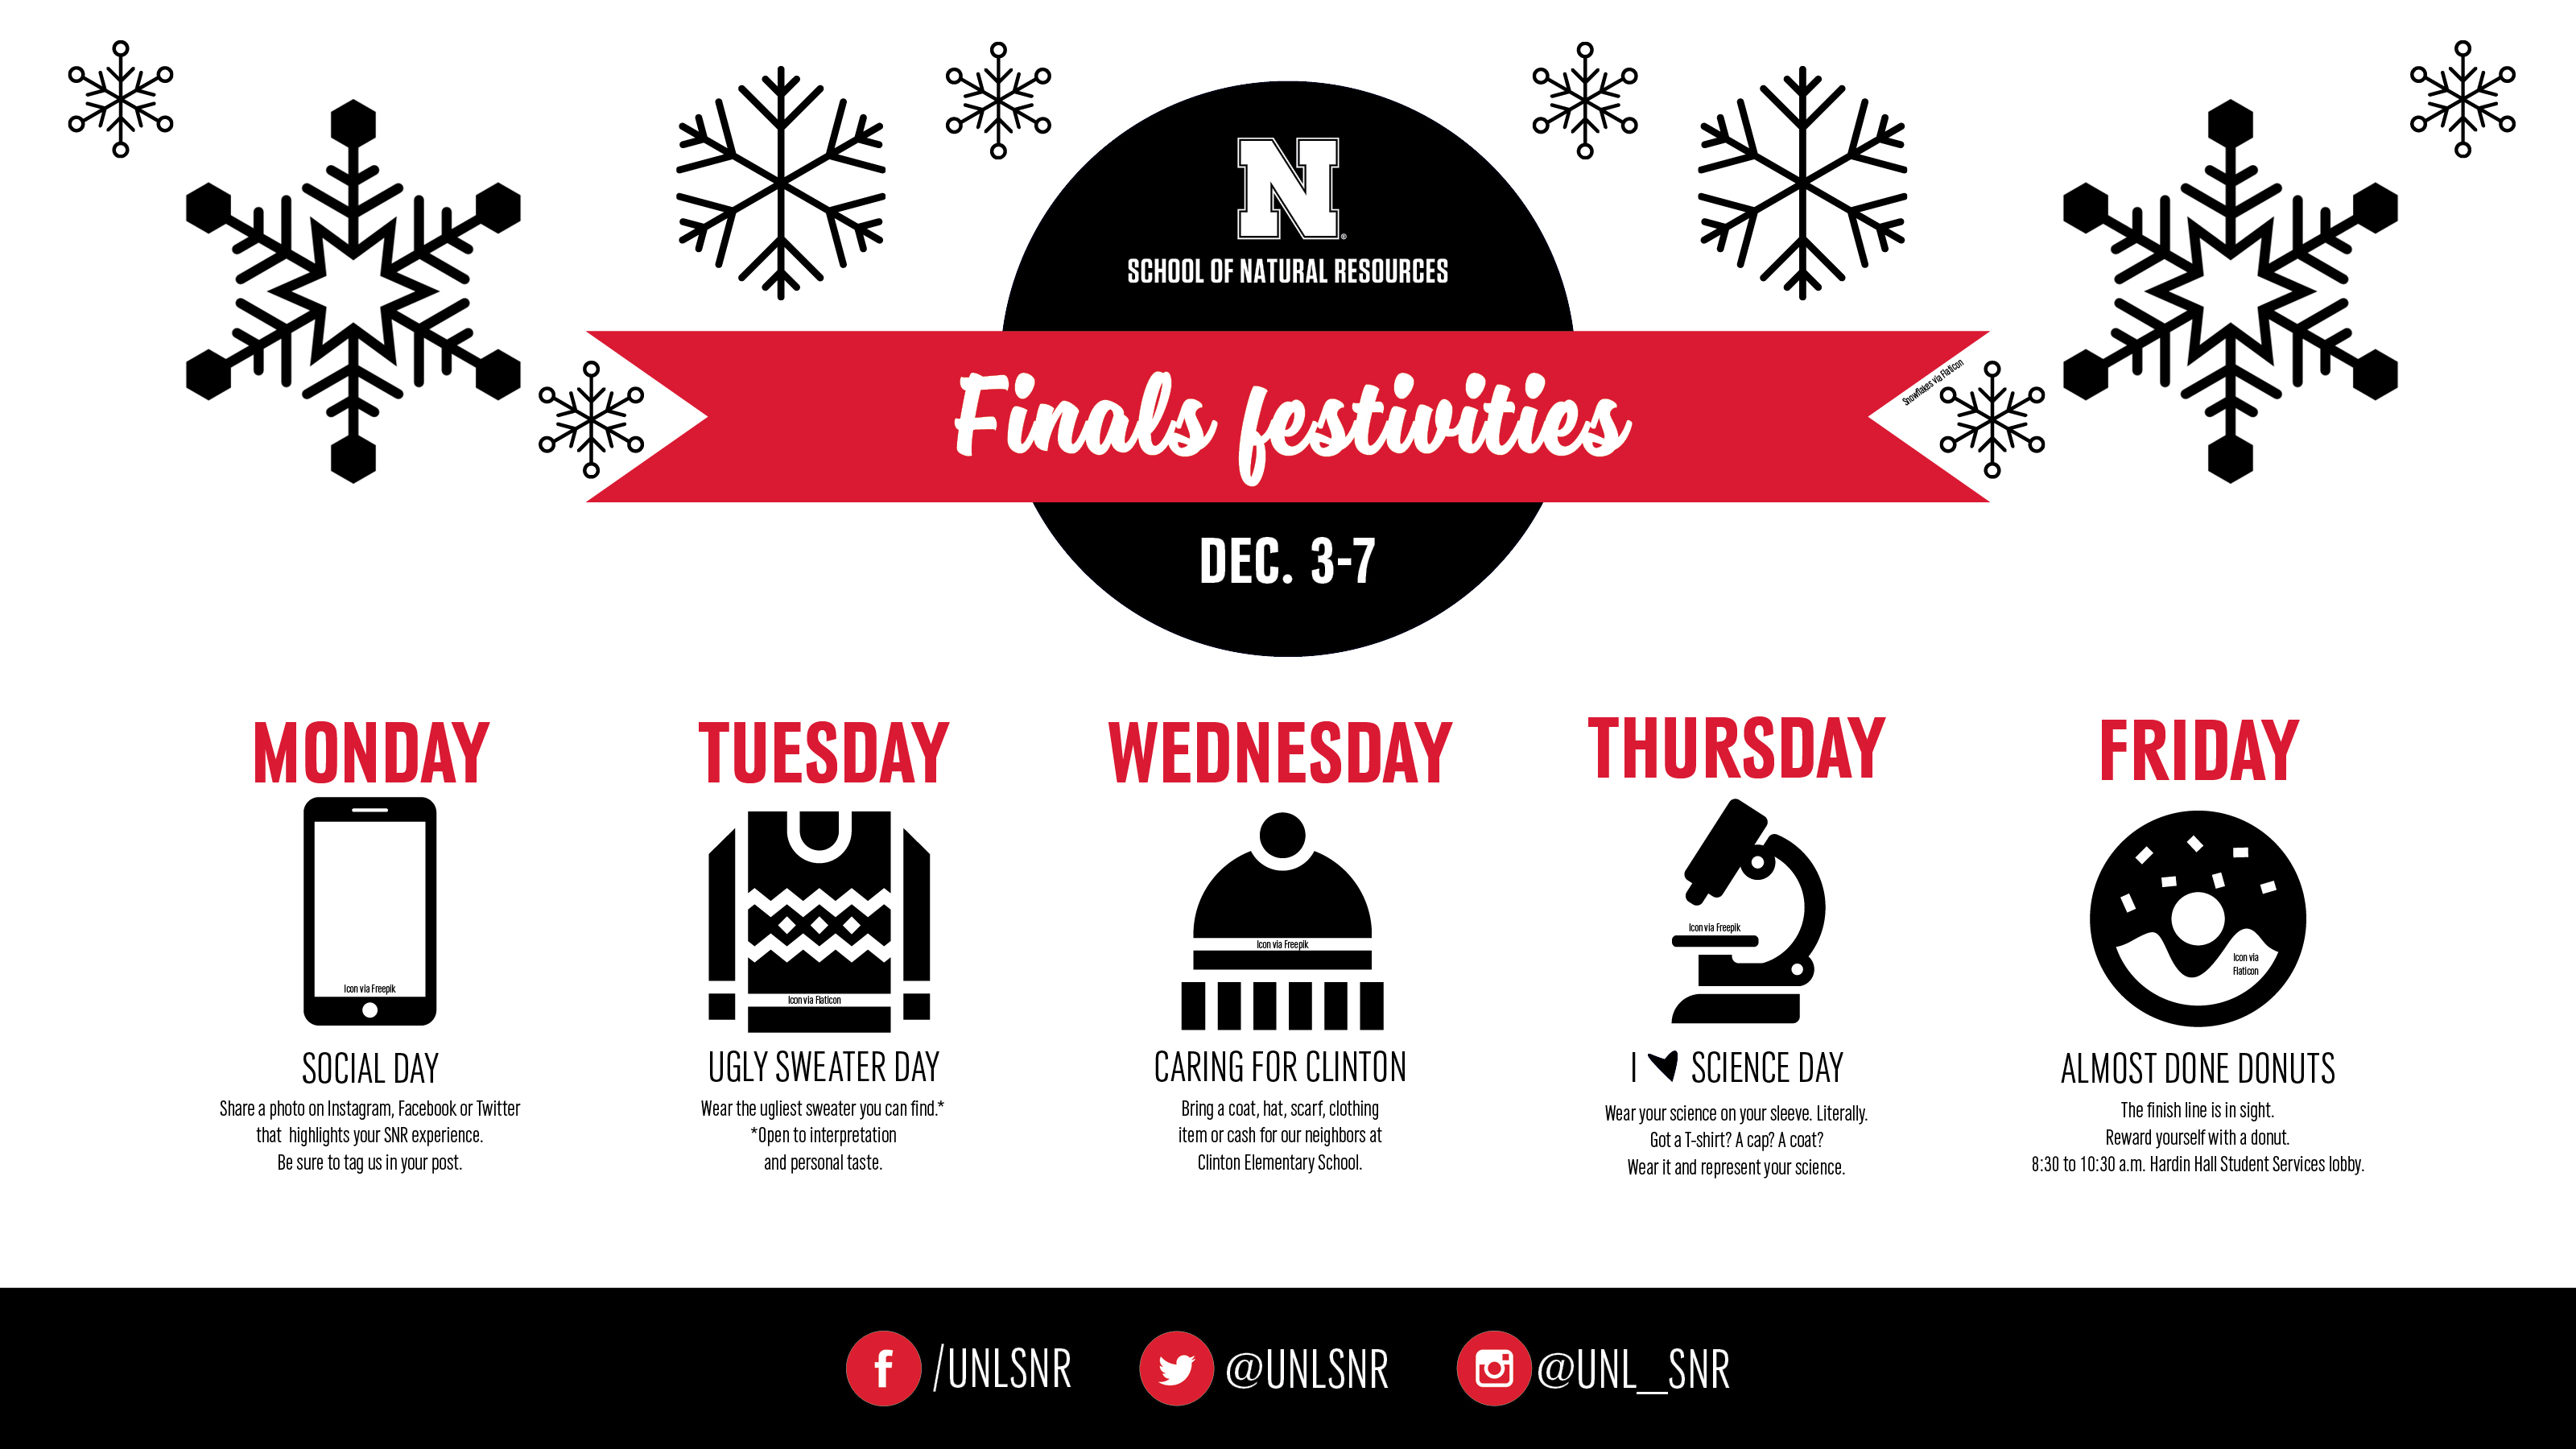 Join SNR in celebrating the near end of the semester.